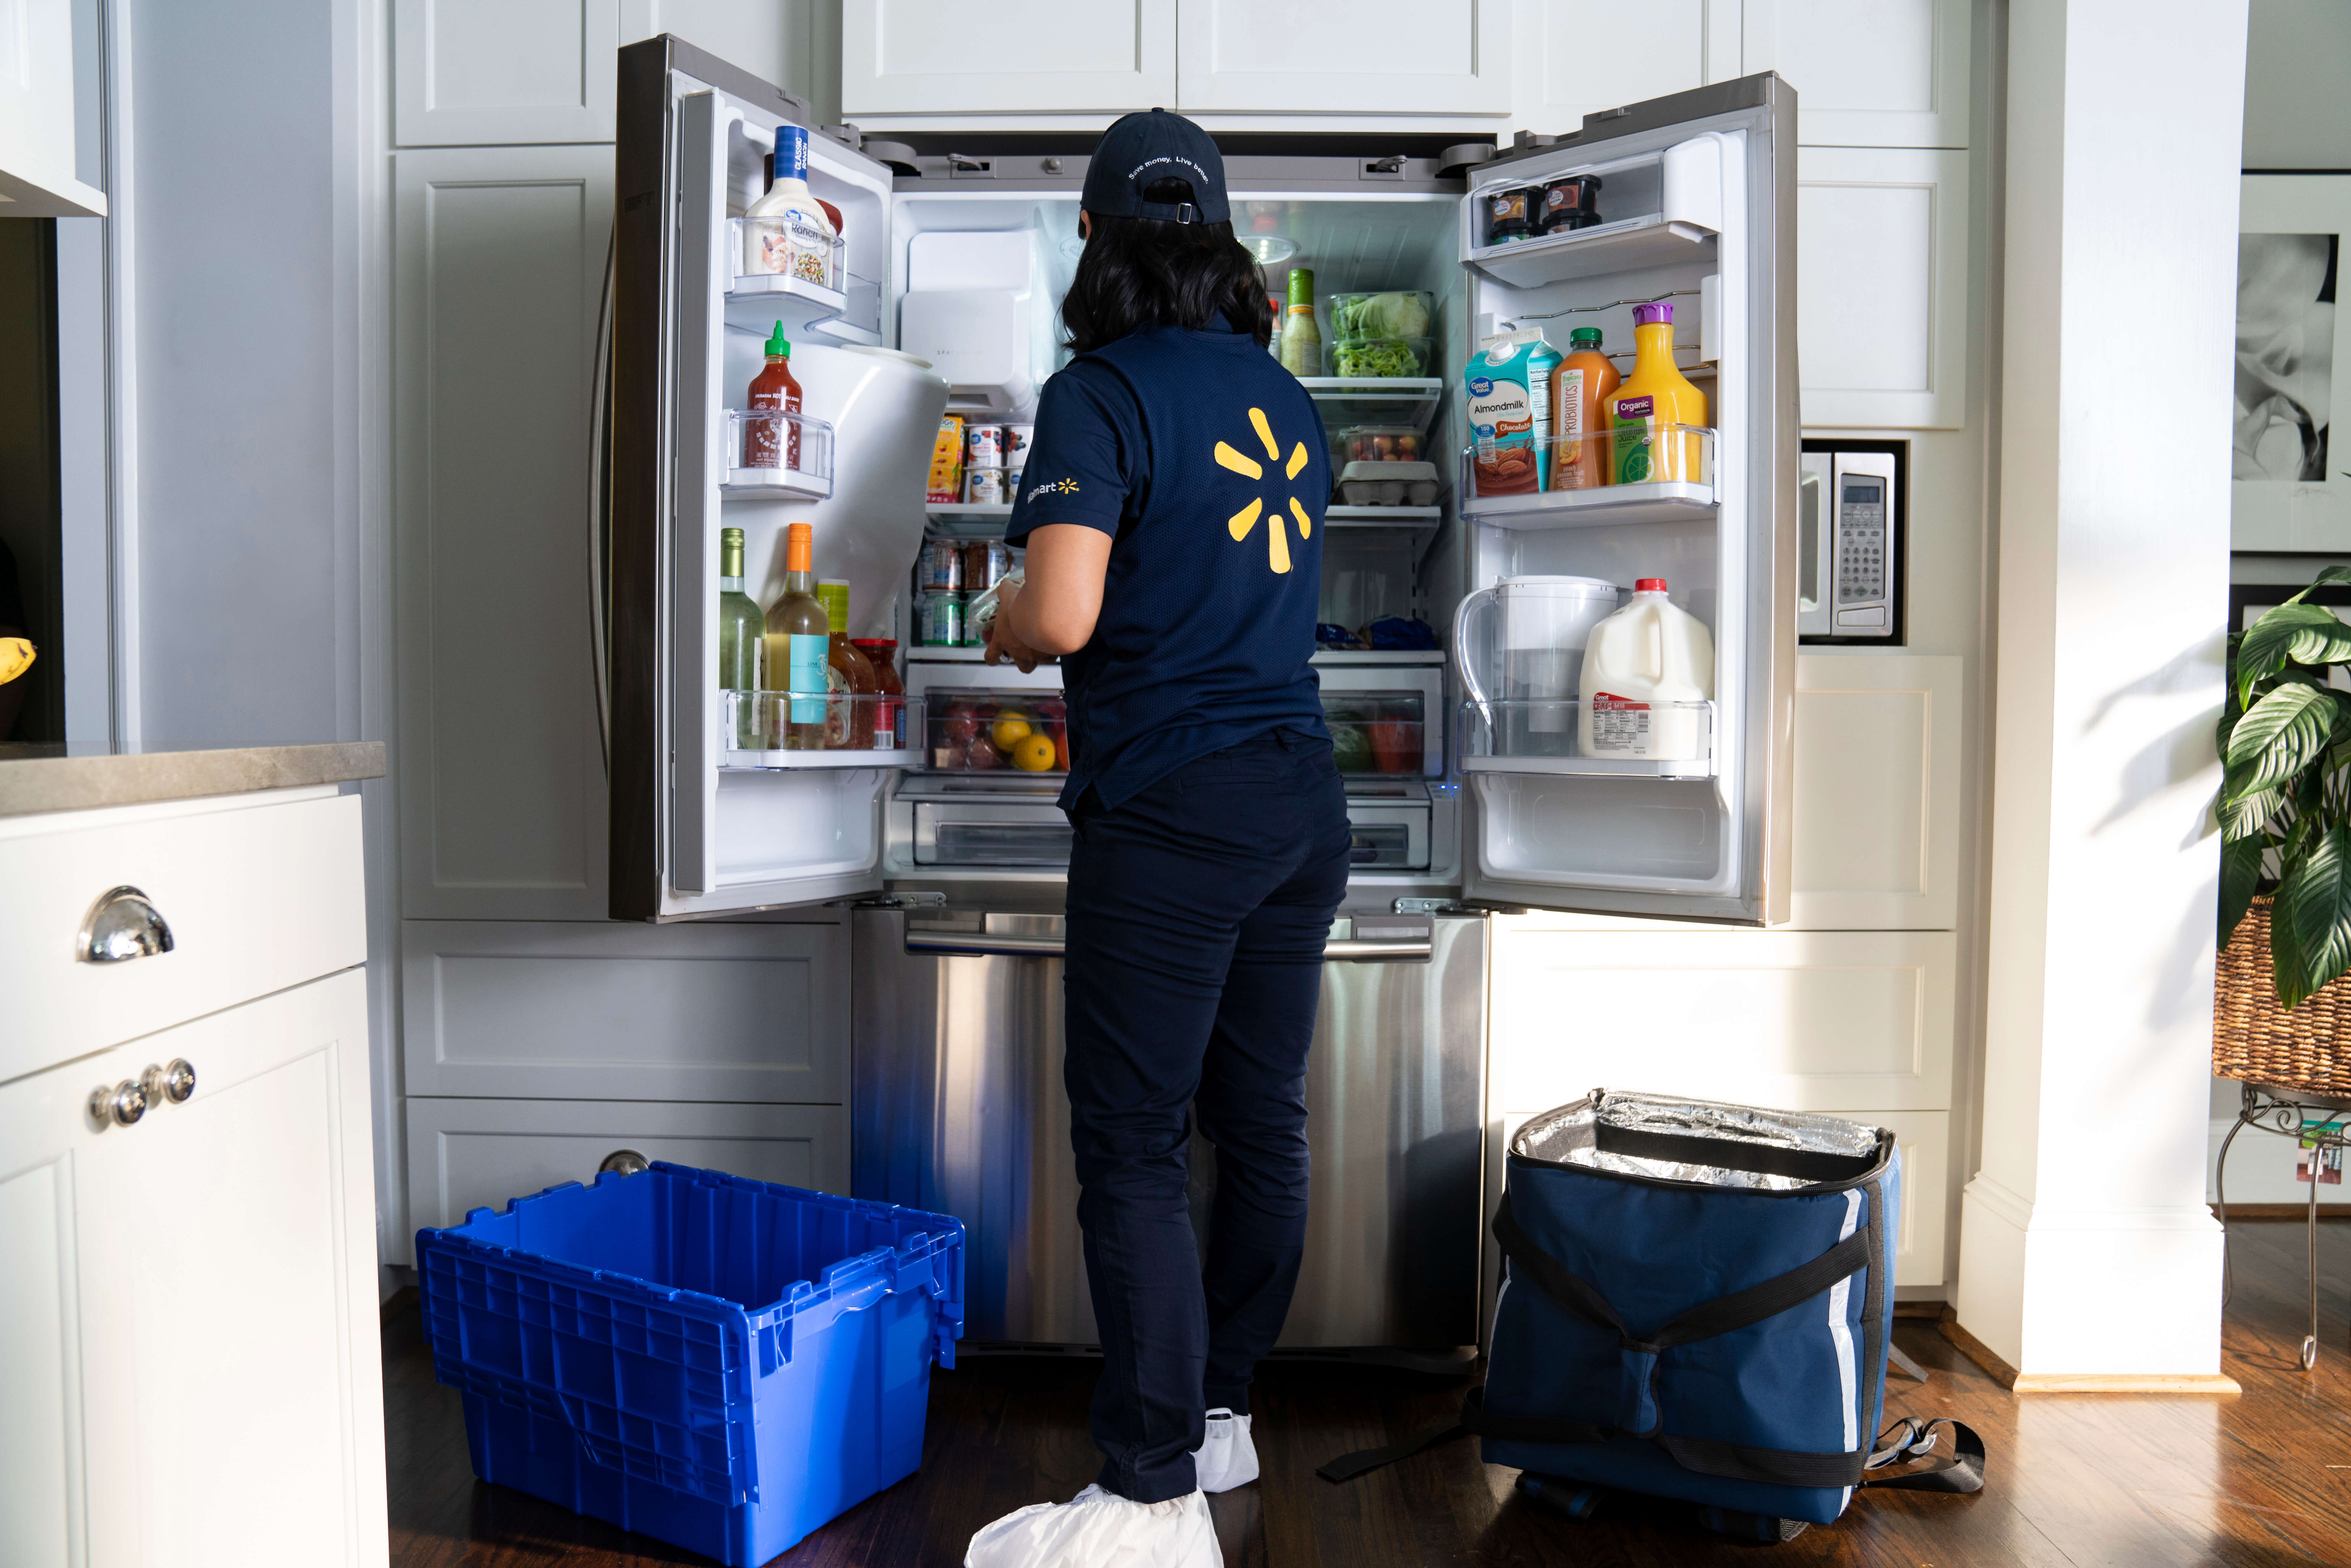 Walmart associate stocking a fridge with InHome Delivery. Source: Walmart